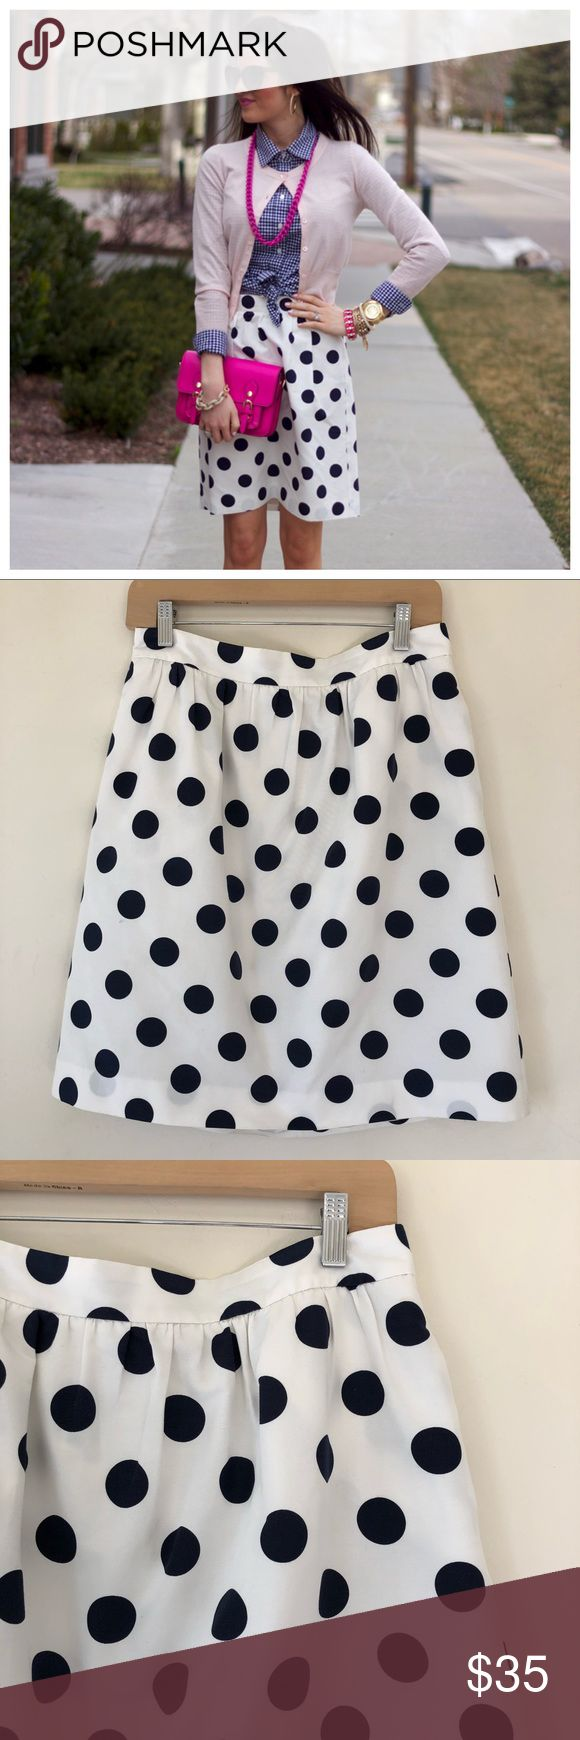 "J. Crew Polka Dot Skirt Super cute polka dot skirt by J. Crew. Features large navy polka dots with gathered waist design. Fully lined. Pockets are still sewed shut, but can be opened. Material: 70% cotton/ 30% silk. Length: 21"" waist to hem. Dry cleaned and ready to wear. No flaws and in great condition. J. Crew Skirts A-Line or Full"